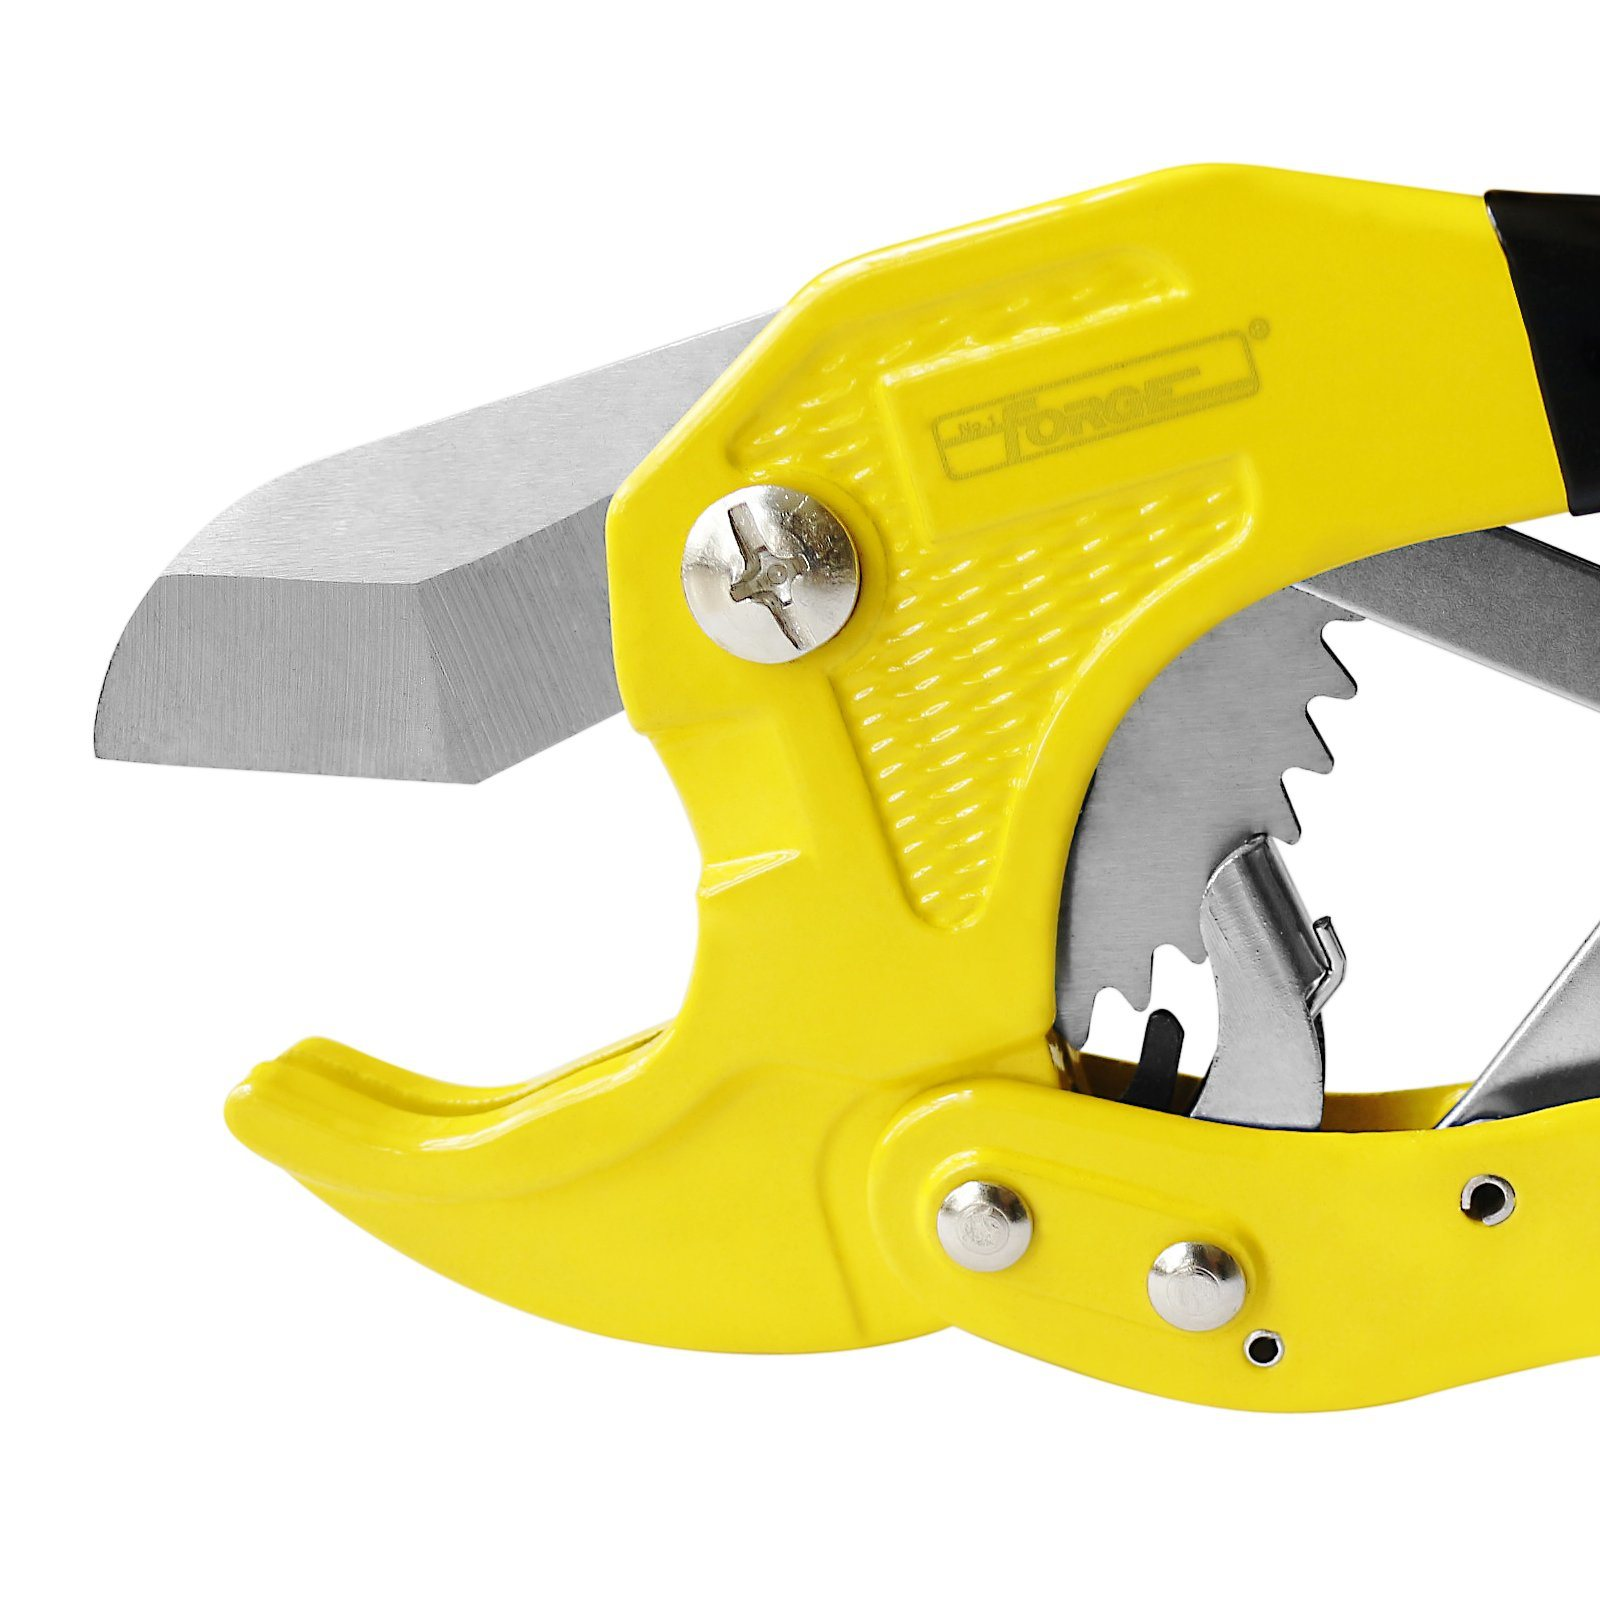 Cutting Tools 4Cr13 Stainless Steel PVC/PPR/PP Tube/Pipe Cutter